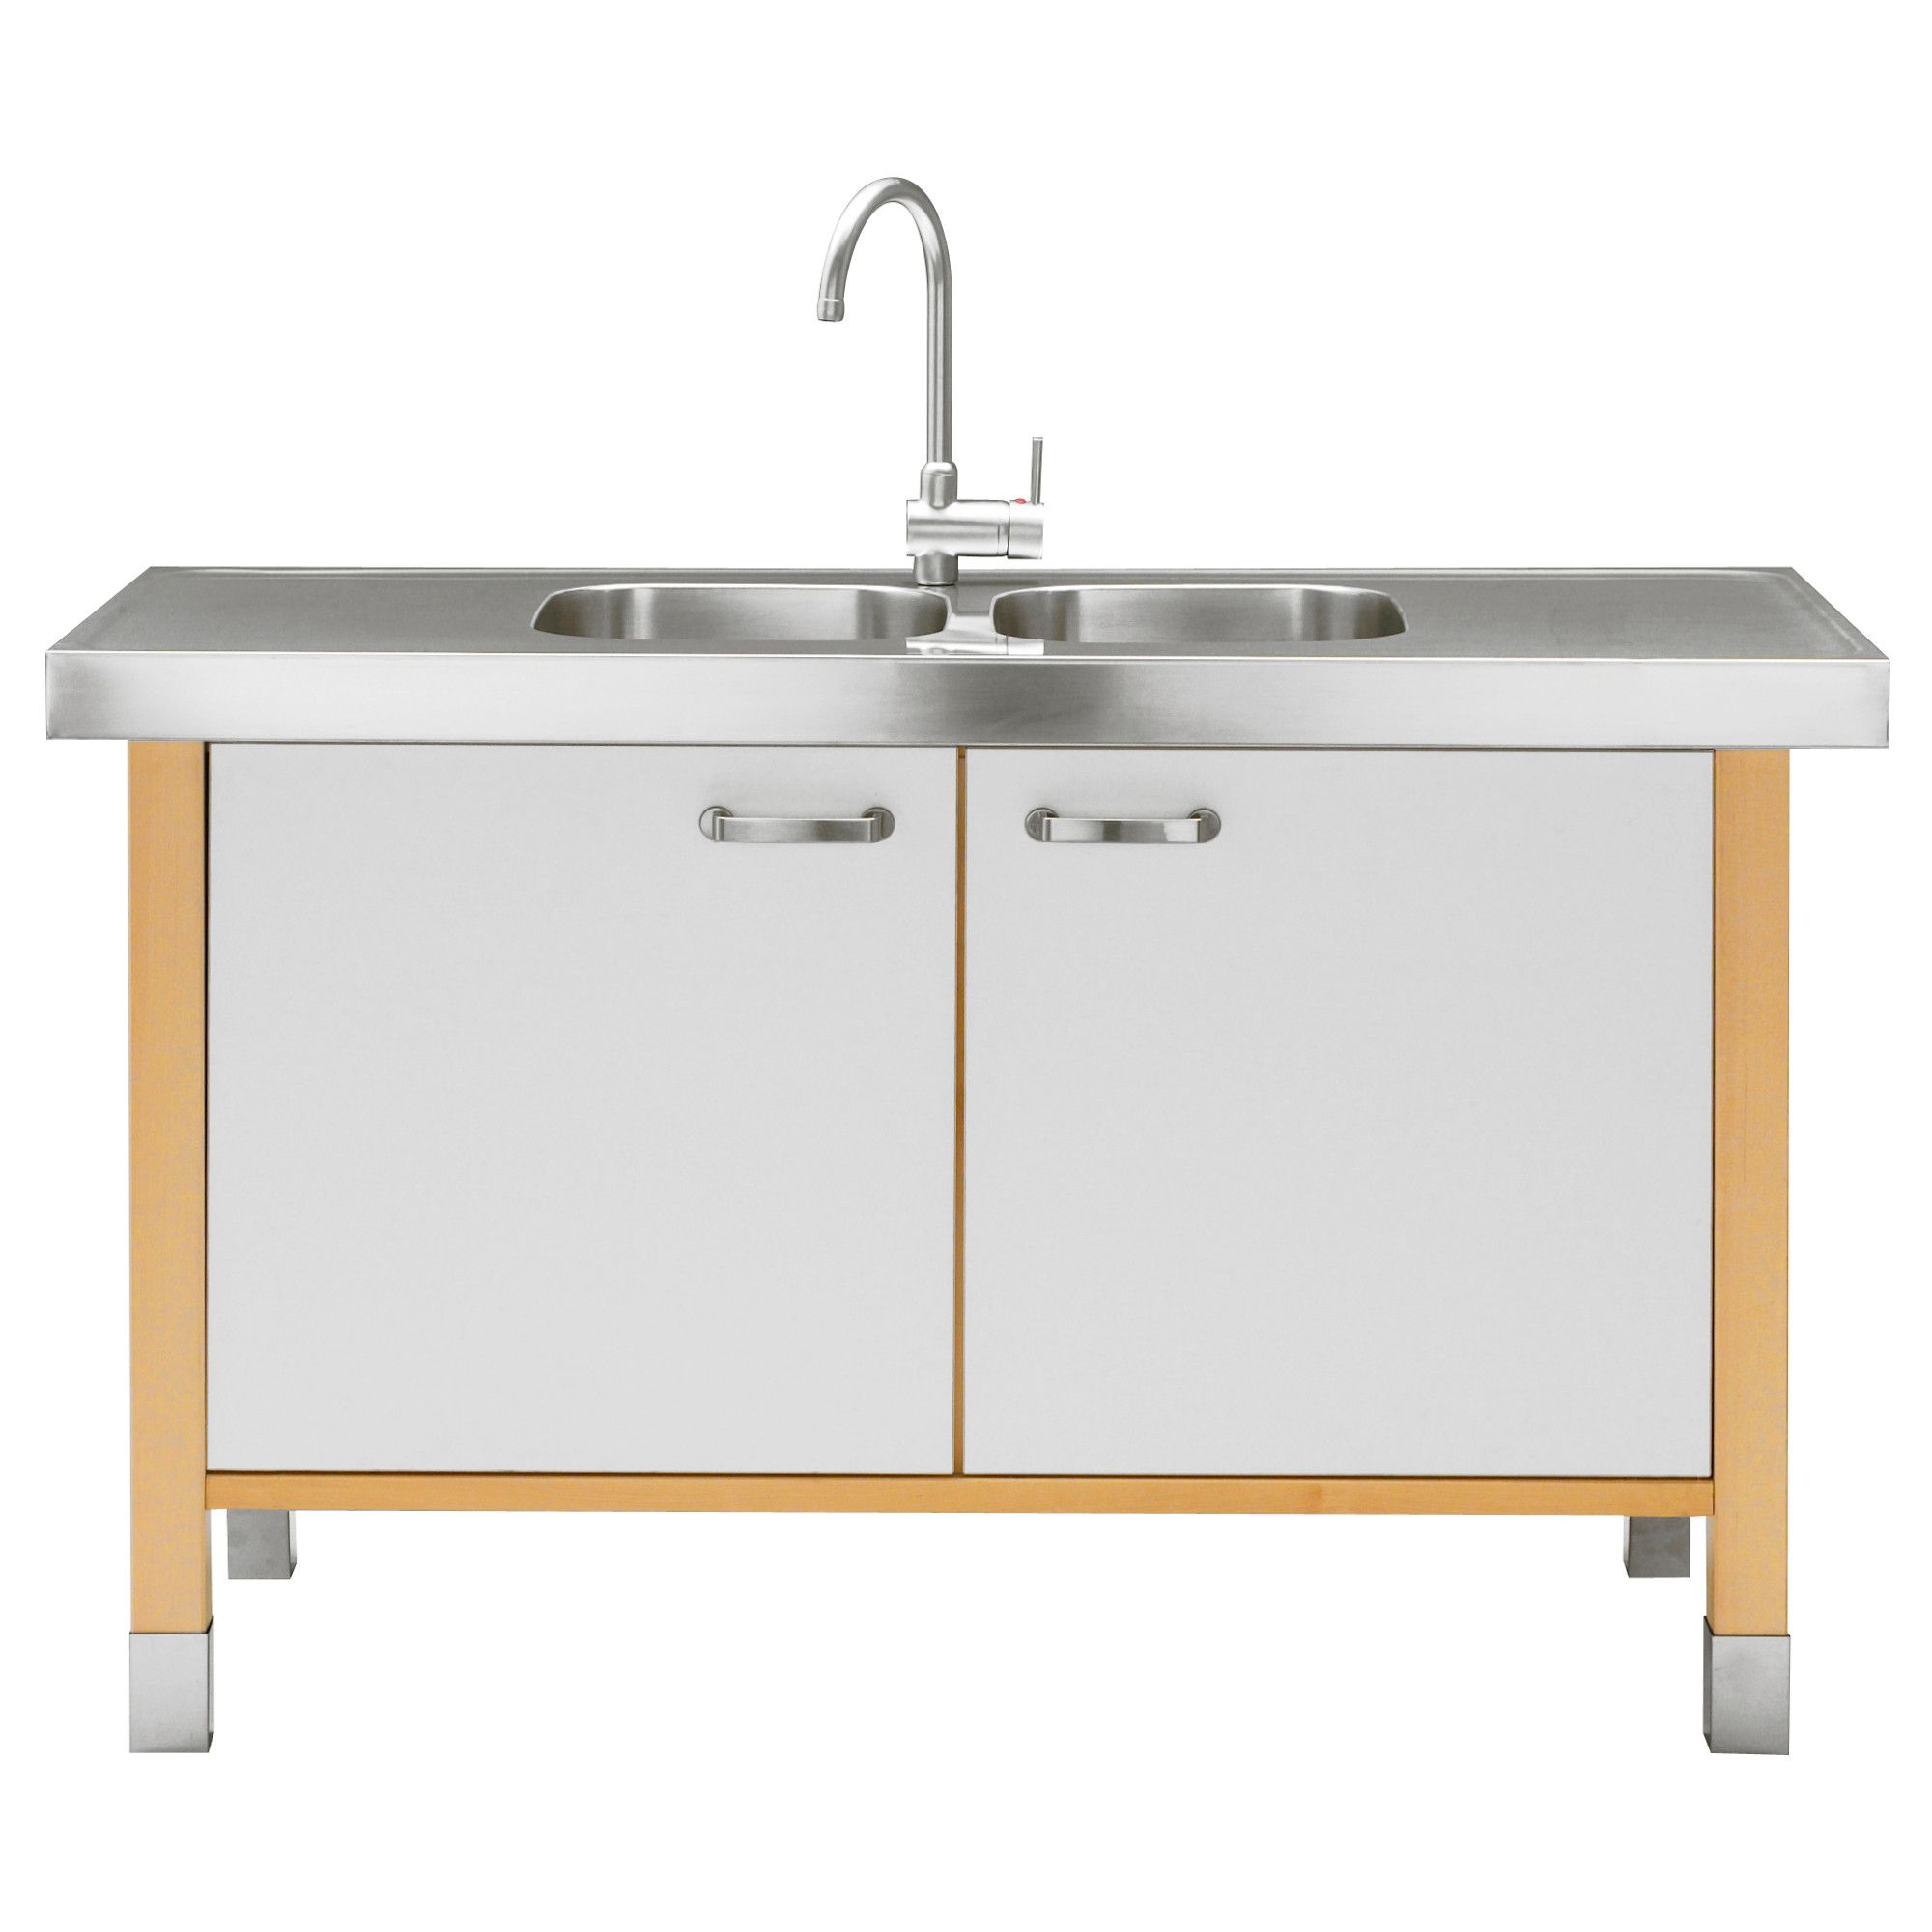 Furniture Home Furnishings Find Your Inspiration Ikea Kitchen Sink Ikea Kitchen Ikea Sinks